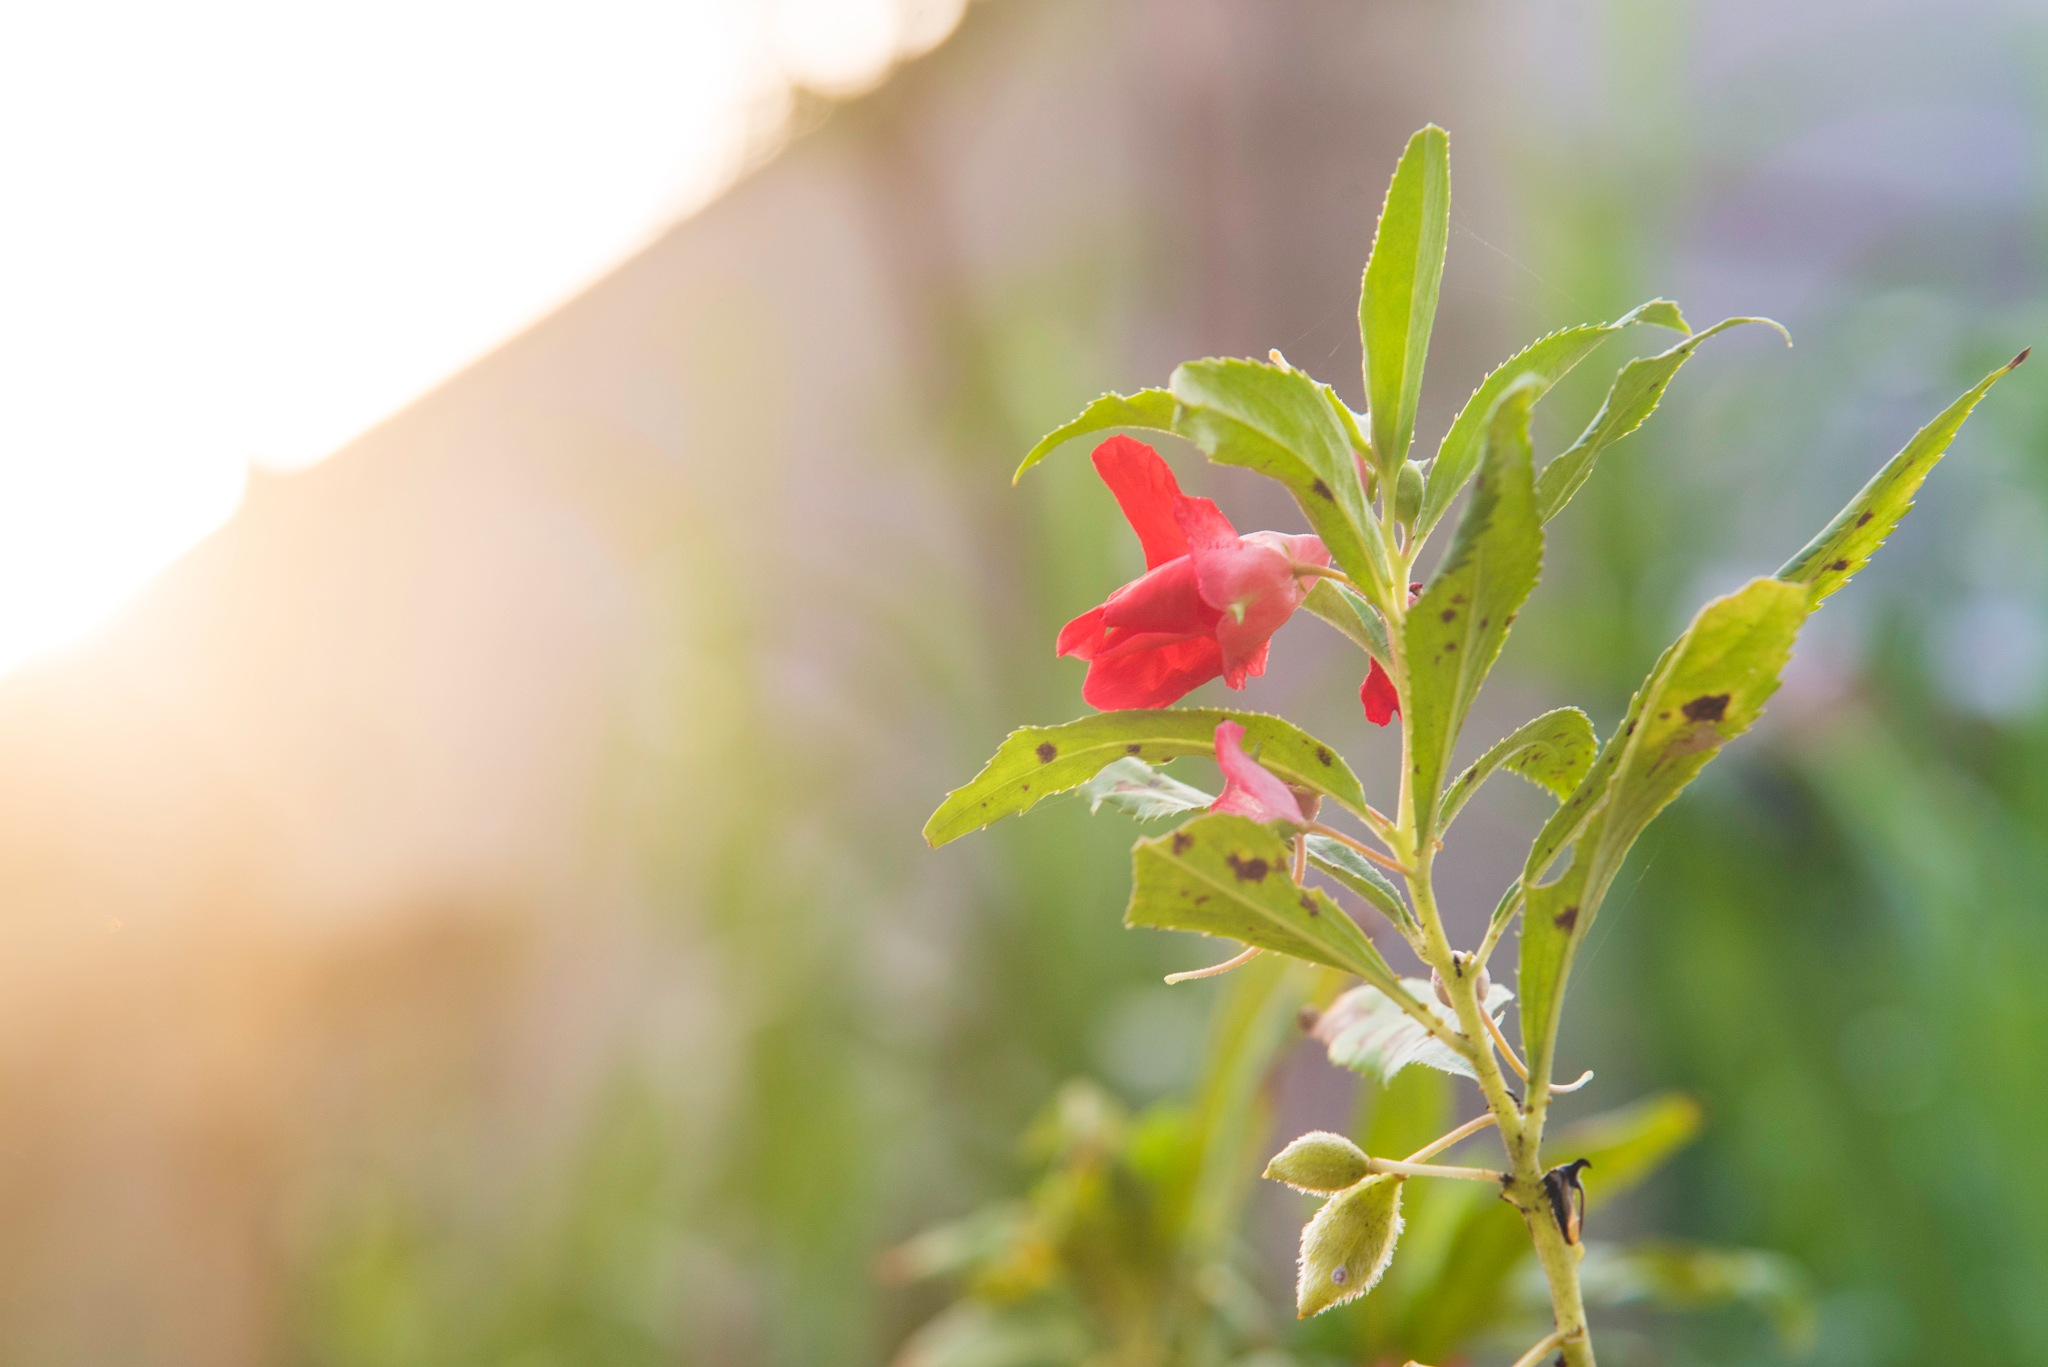 balsam by lequangchi